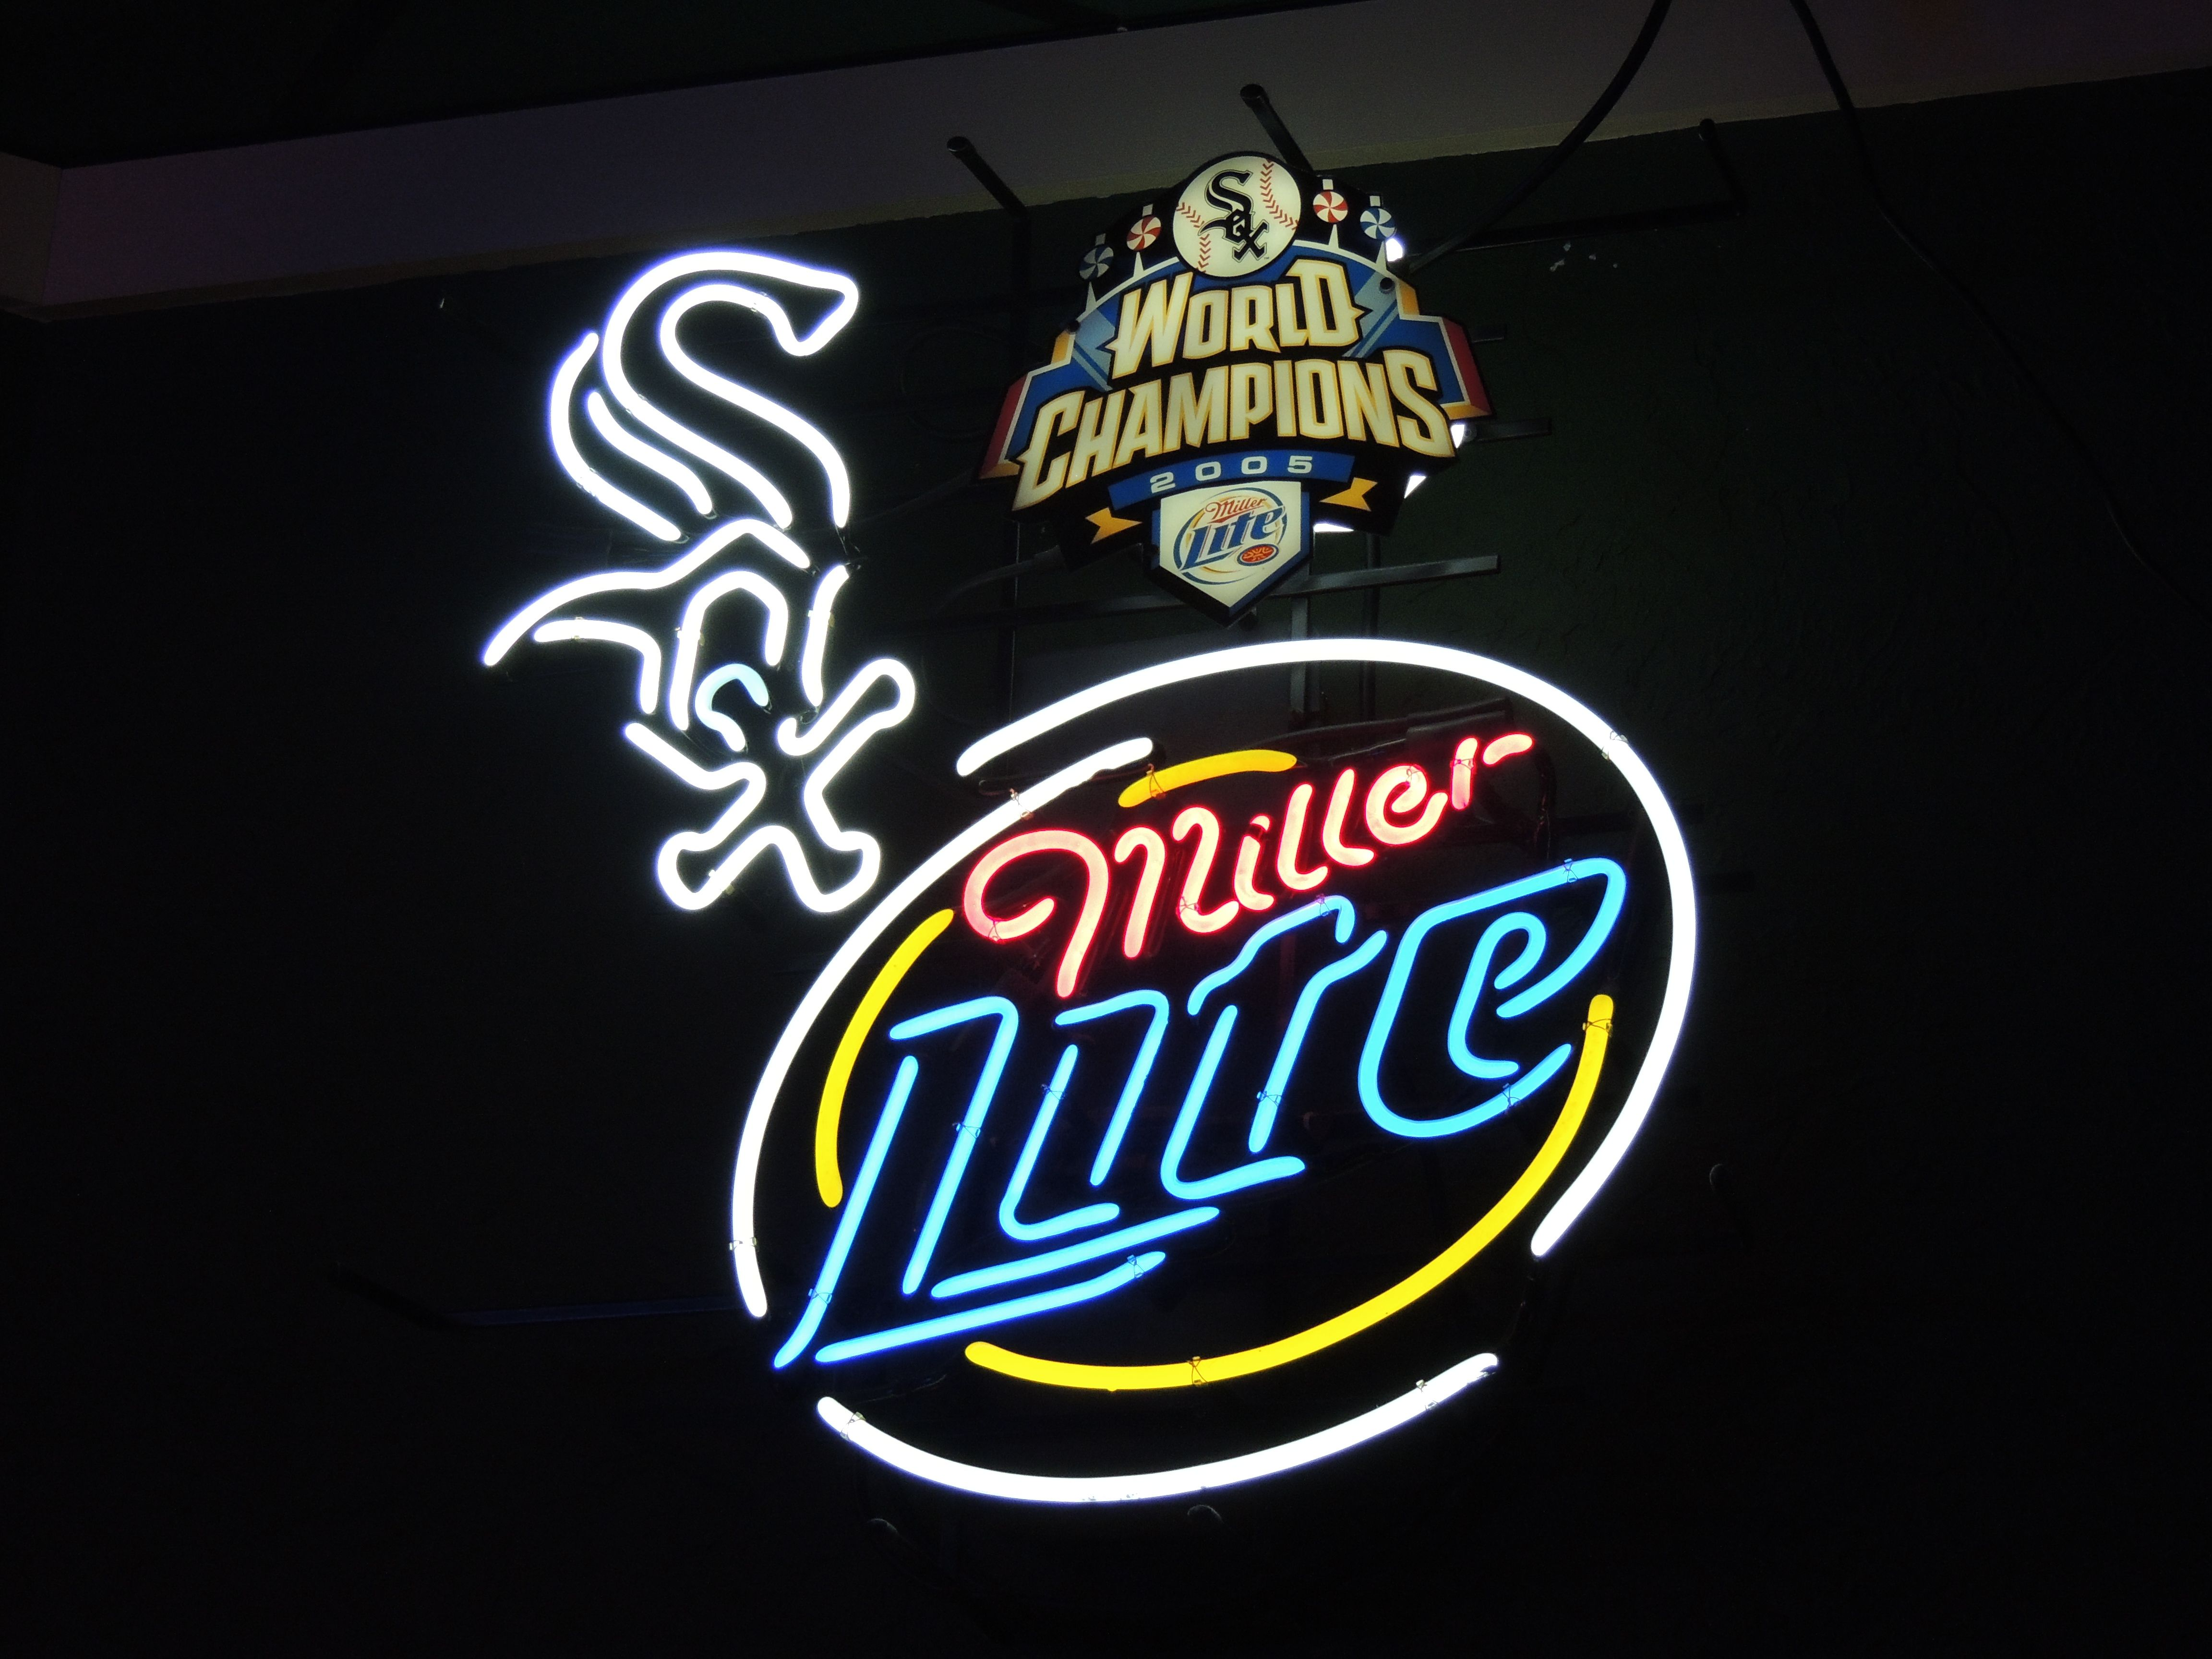 Neon Beer Sign Chicago White Sox World Champions Mlb